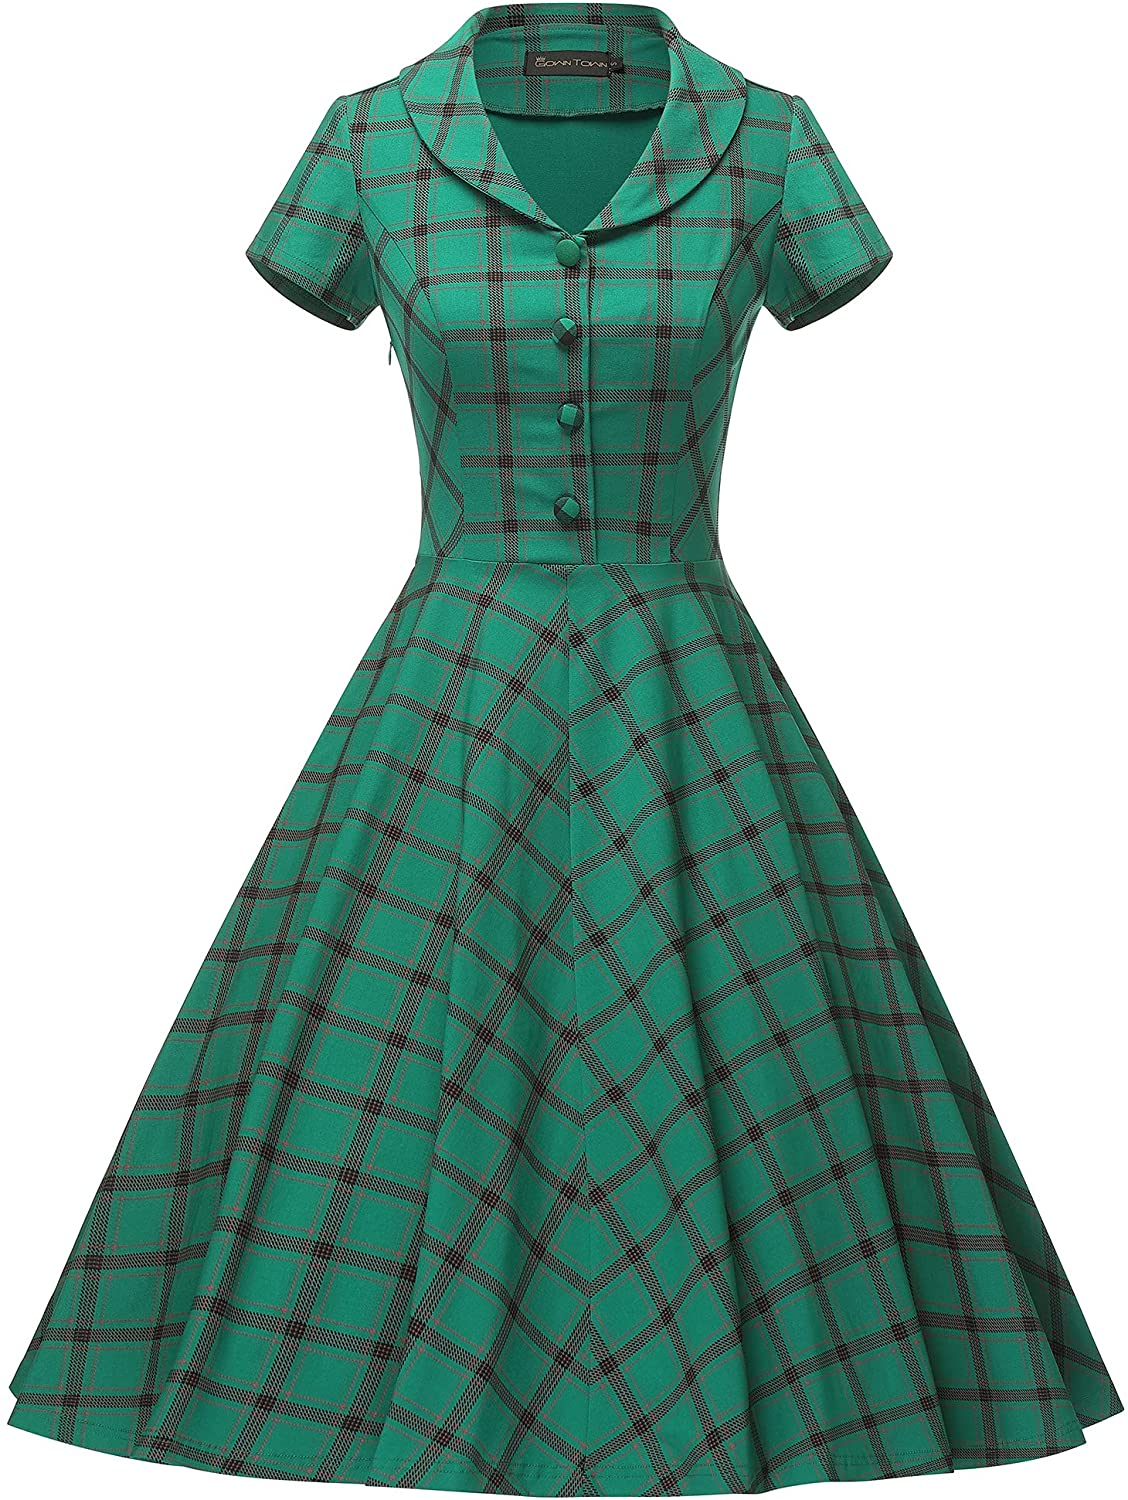 Pin Up Girl Costumes | Pin Up Costumes GownTown Womens 1950s Vintage Plaid Swing Dress with Pockets  AT vintagedancer.com